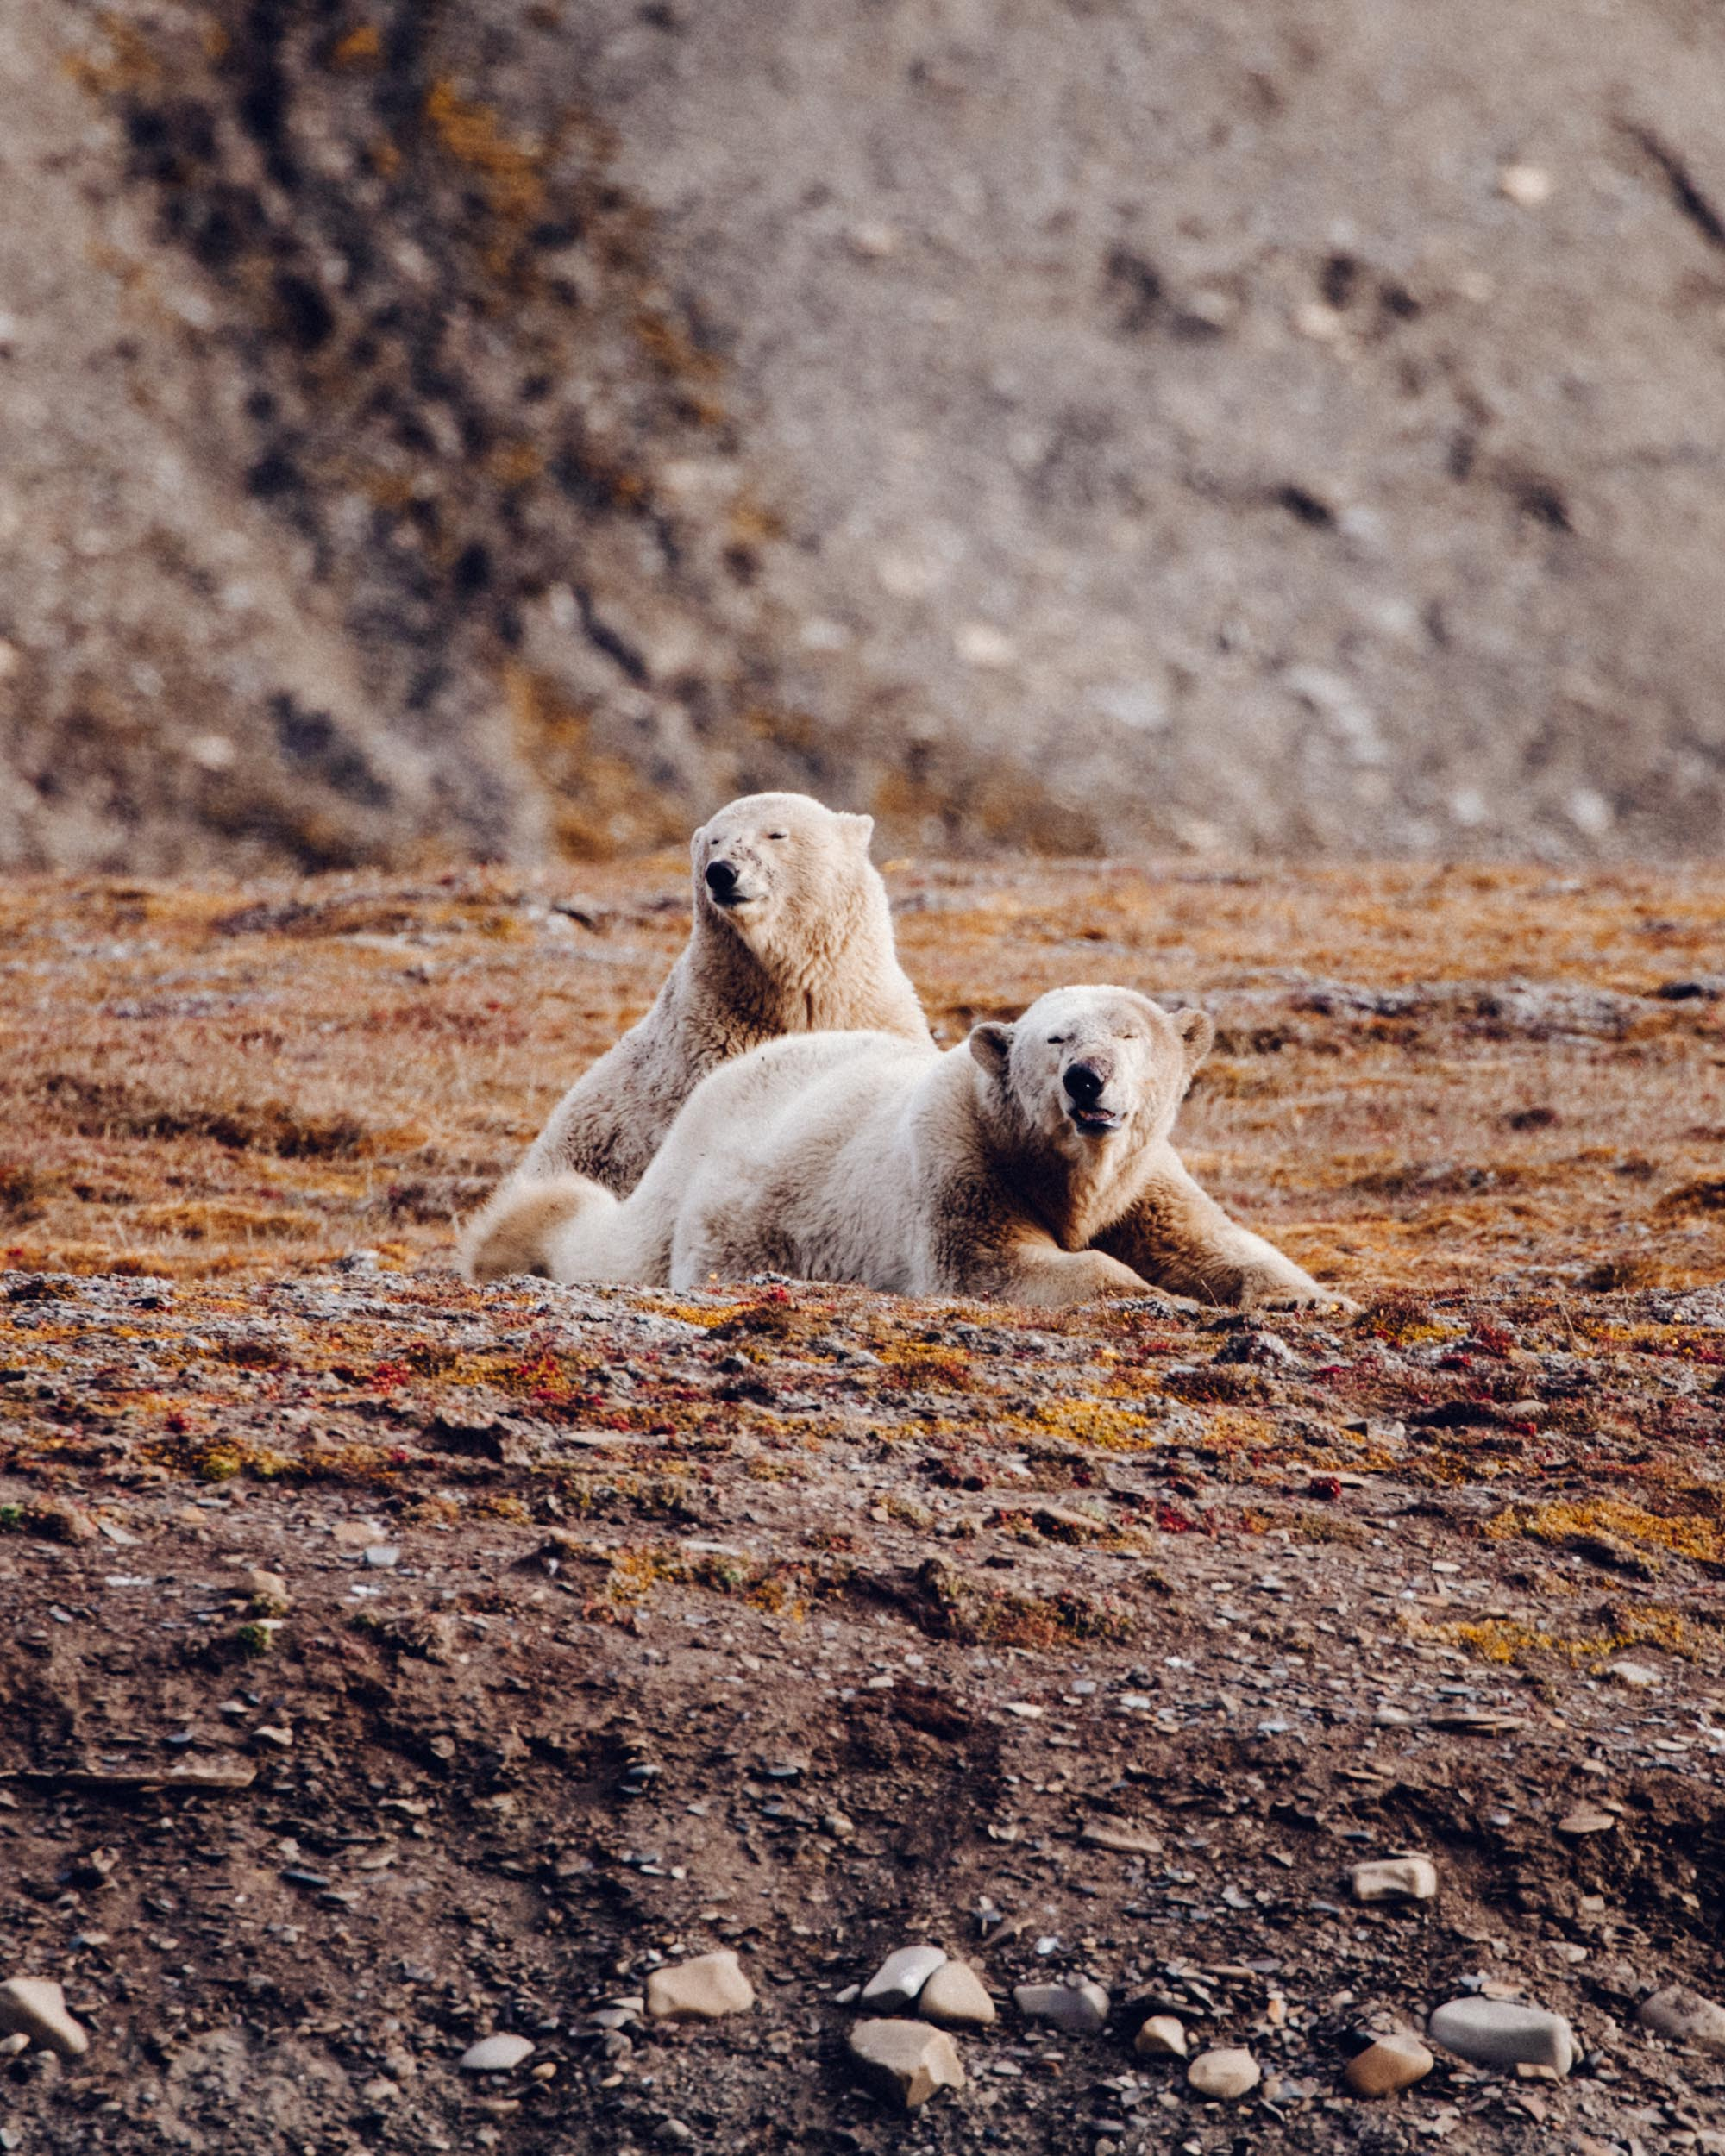 Mother Polar bear and polar bear cub in Spitsbergen, Svalbard, Norway